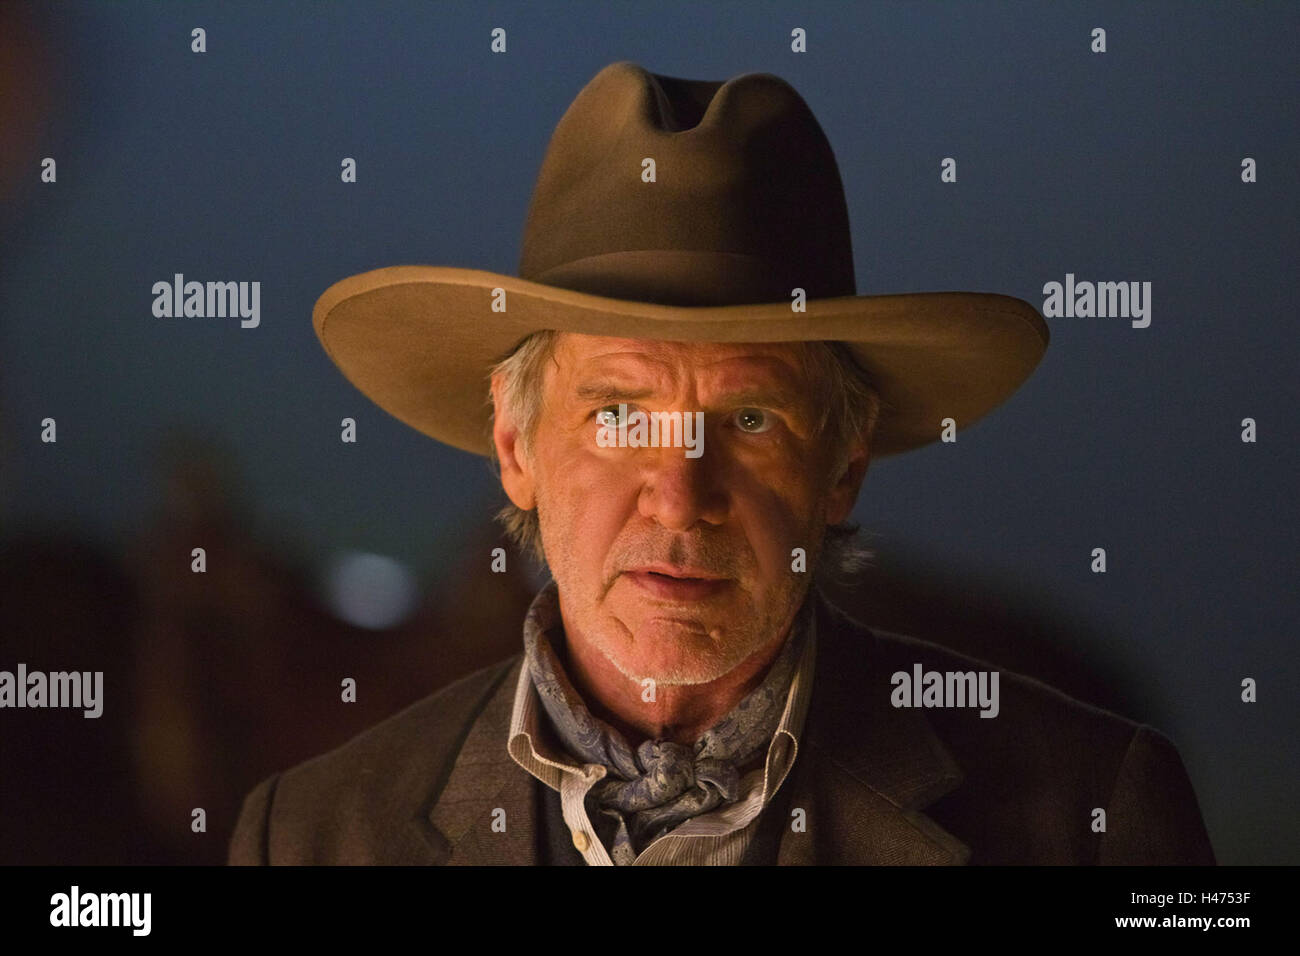 Page 2 - Cowboys And Aliens High Resolution Stock Photography and Images -  Alamy